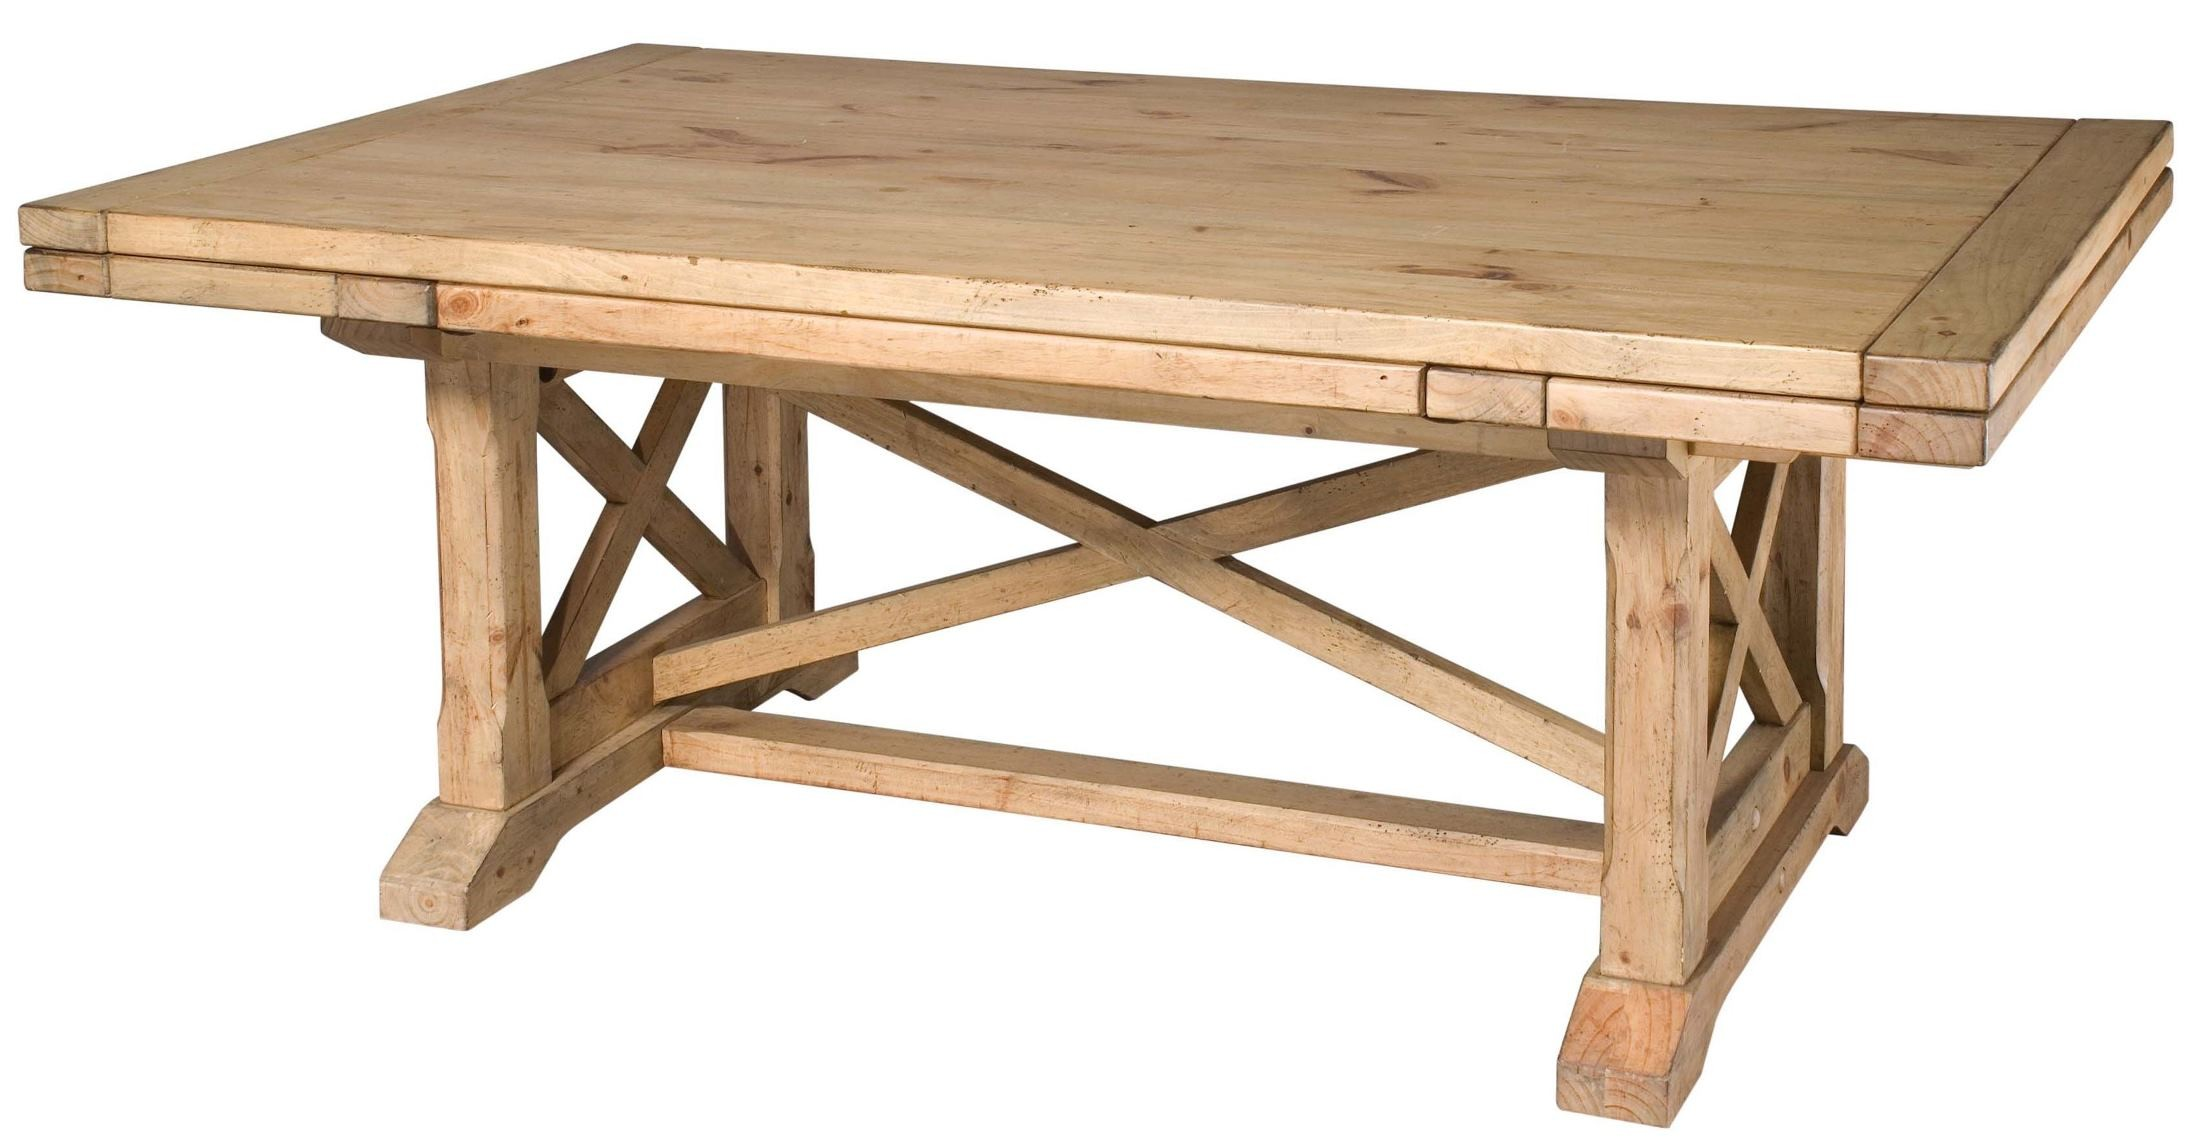 Homecoming Vintage Pine Refectory Extendable Trestle  : 33 054 from colemanfurniture.com size 2200 x 1145 jpeg 261kB